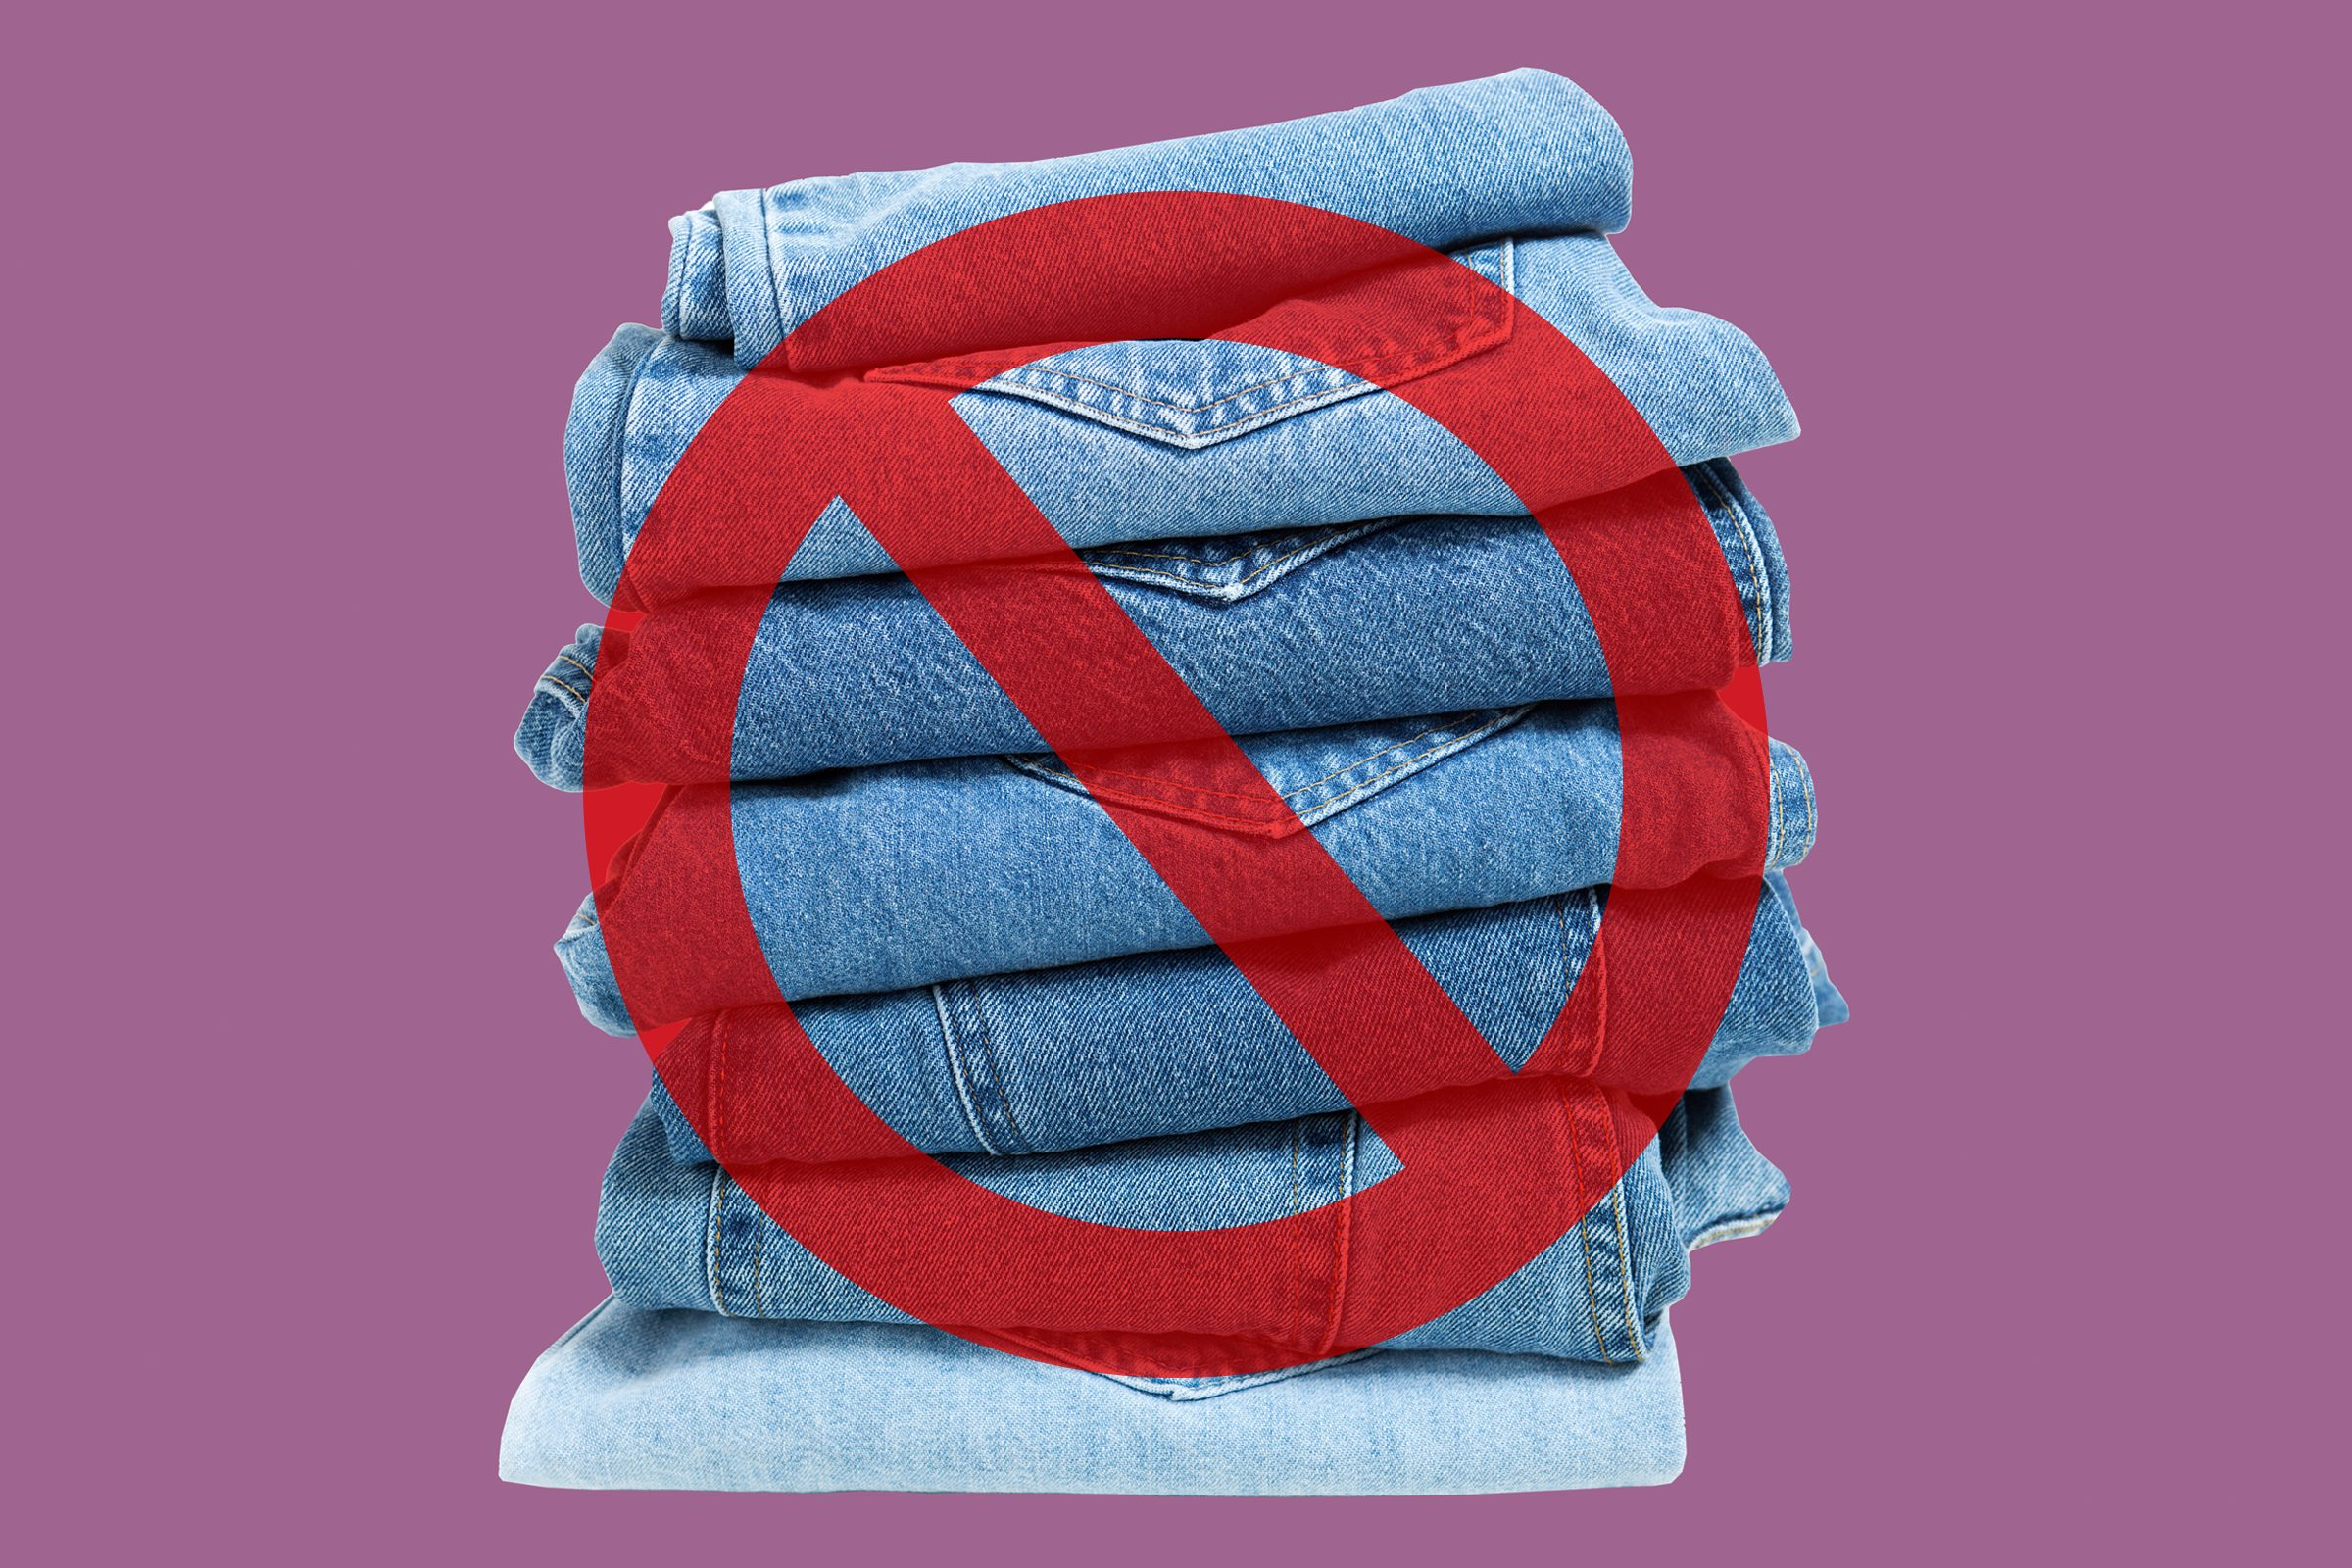 Jeans on purple background with cancel sign over it